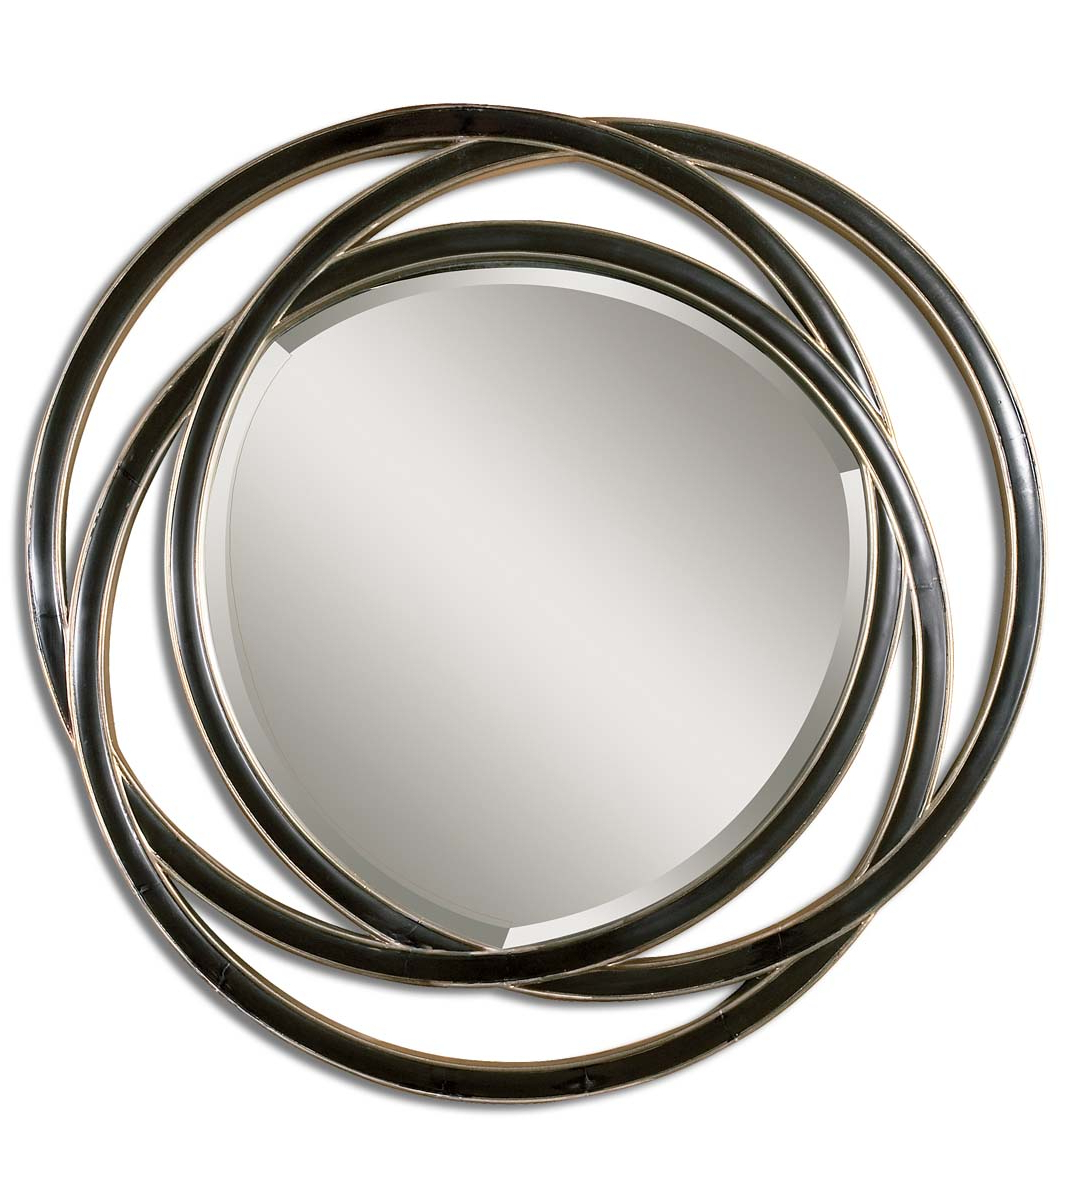 "Odalis Round Black Wall Mirroruttermost – 48"" X 48"" – Fine Home Intended For Most Popular Round Black Wall Mirrors (View 19 of 20)"